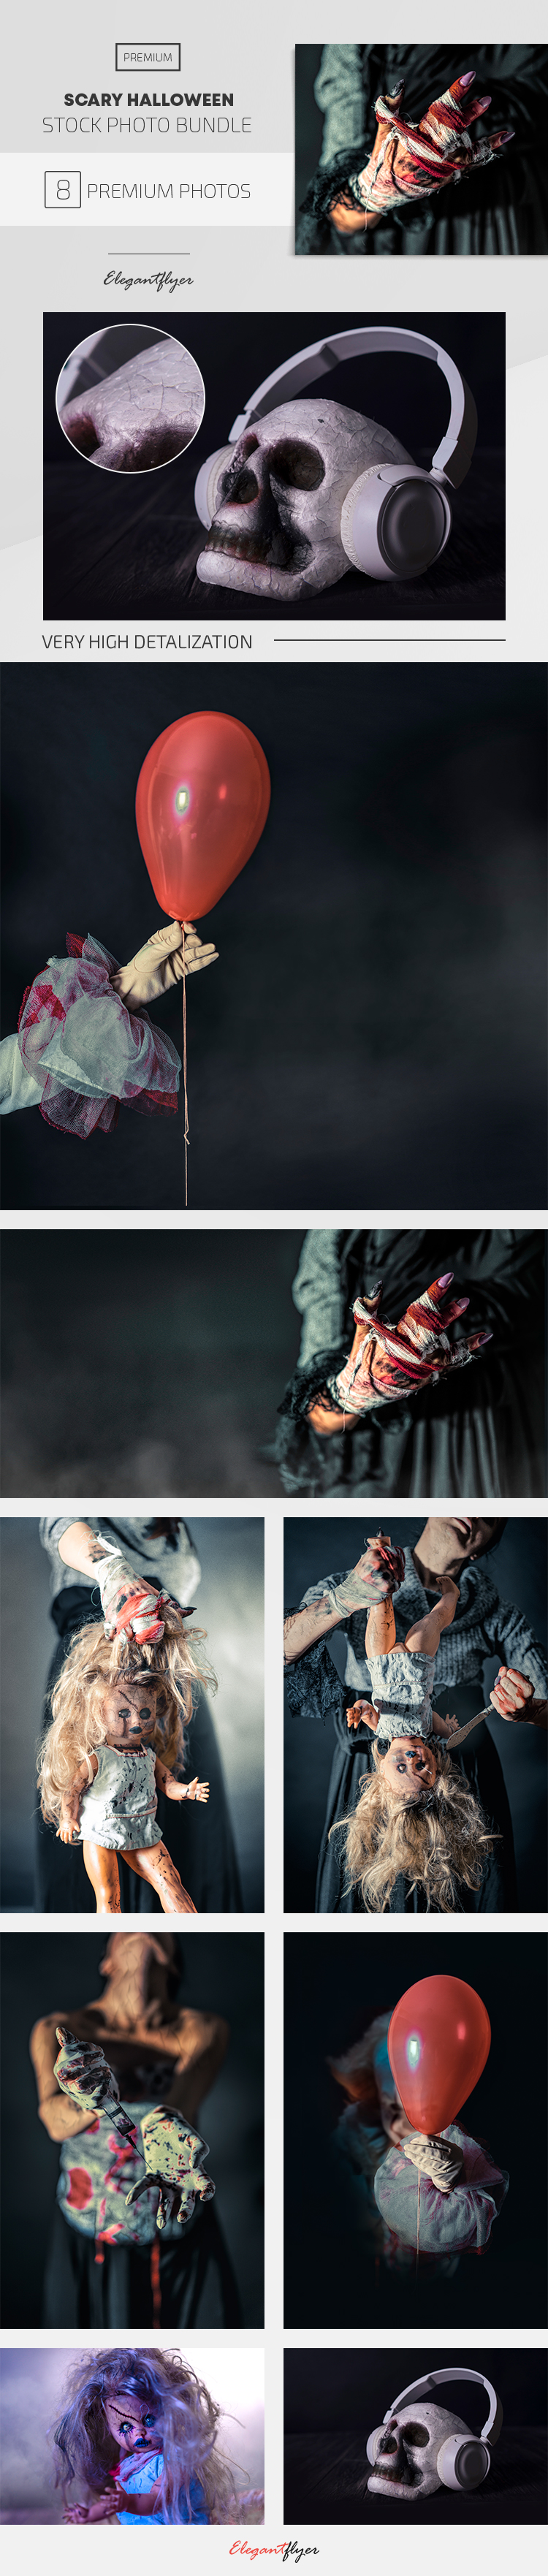 Scary Halloween – Premium Stock Photos Bundle